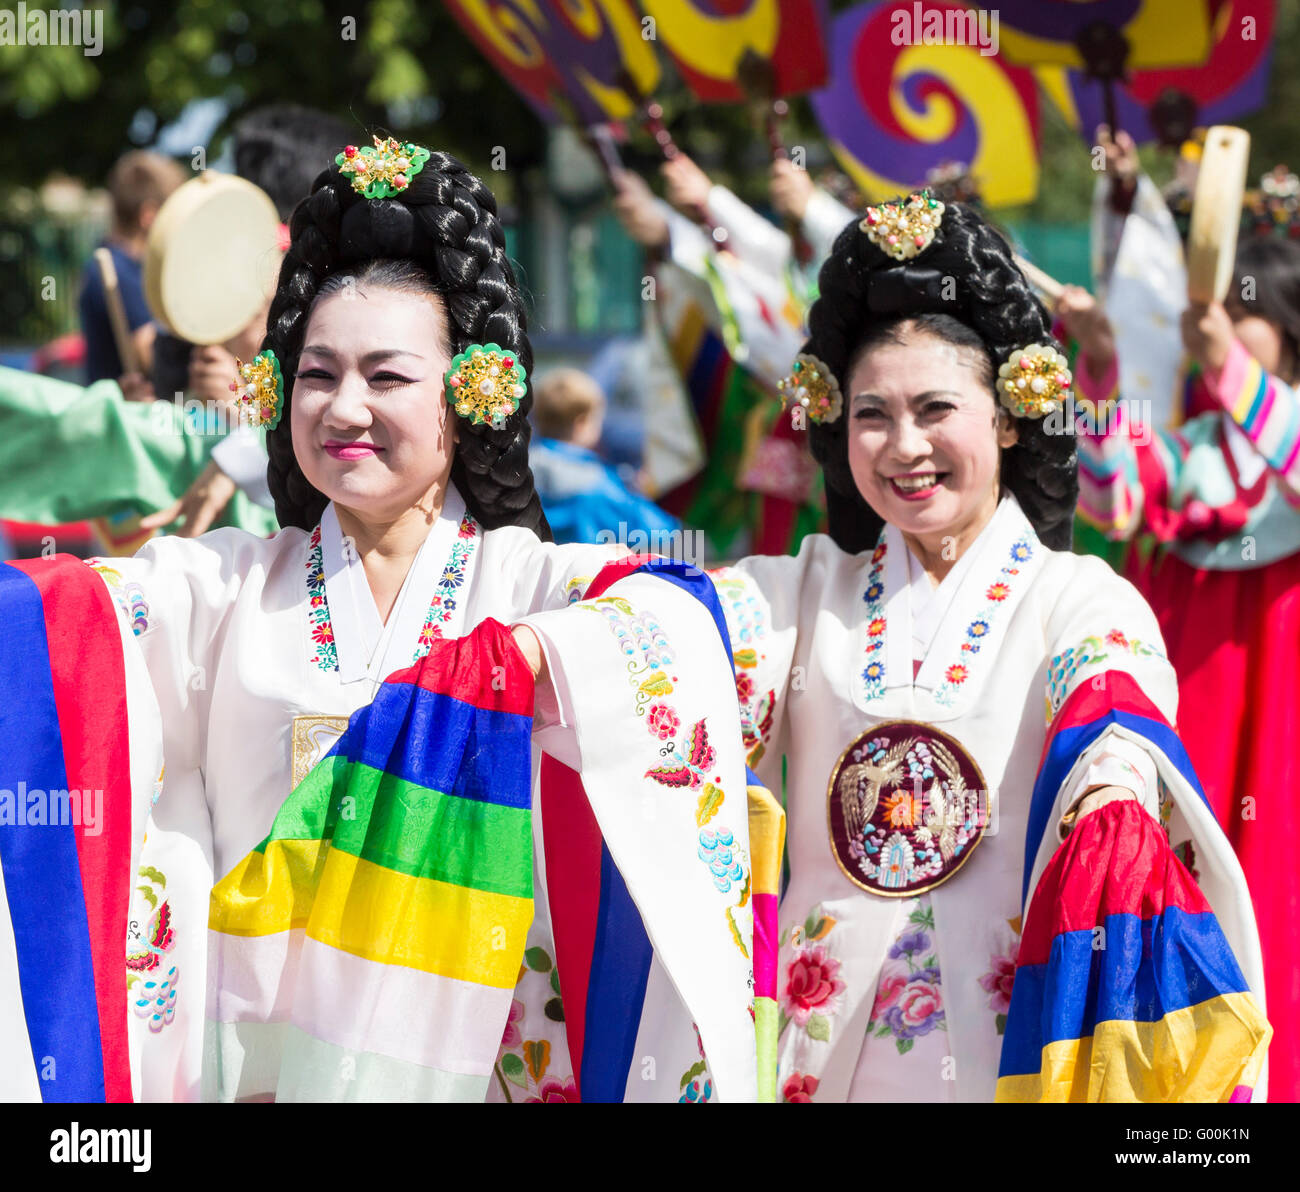 Dancers from South Korea in traditional costume. - Stock Image